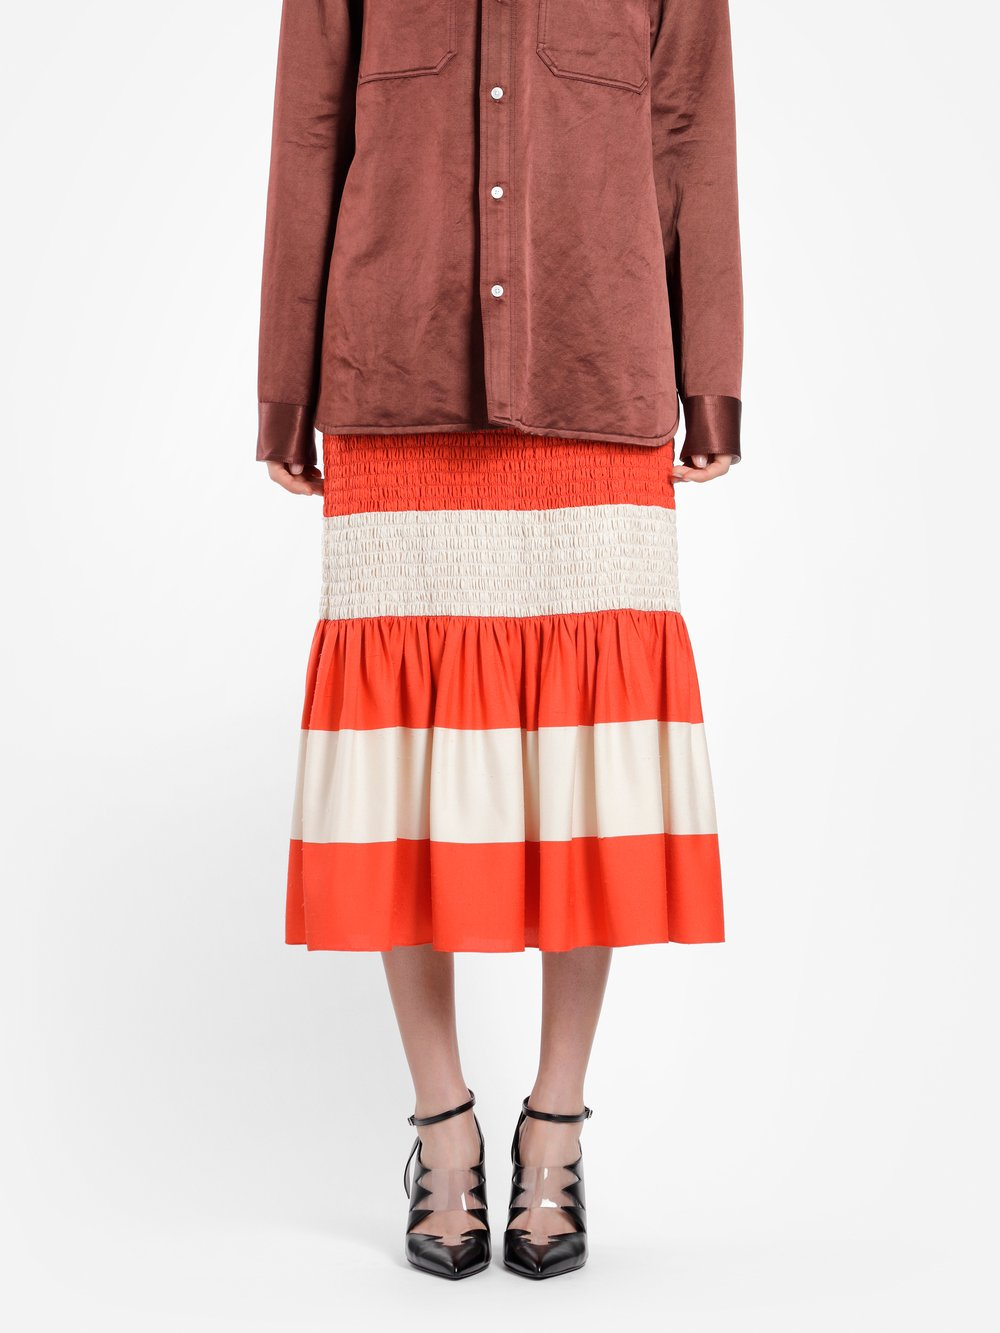 CALVIN KLEIN 205W39NYC WOMEN'S MULTICOLOR MID-CALF LENGHT STRIPED SKIRT